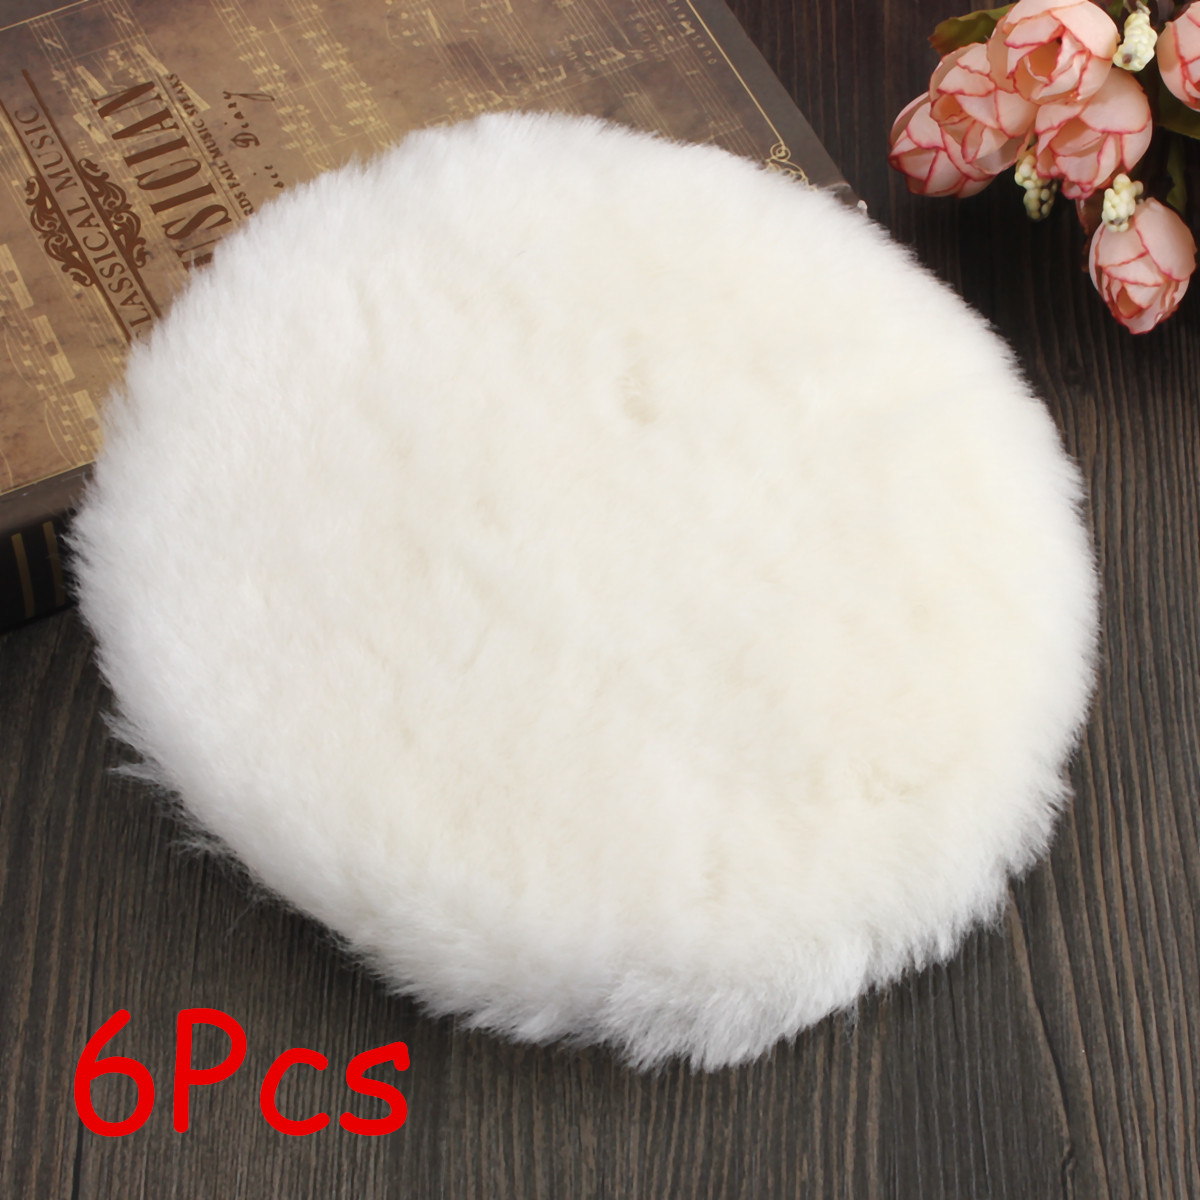 6PCS 150 Mm Lambs Wool Polishing Bonnet Car Polishing Pad Polish Waxing Pads For For Car Polishing Buffing Patch